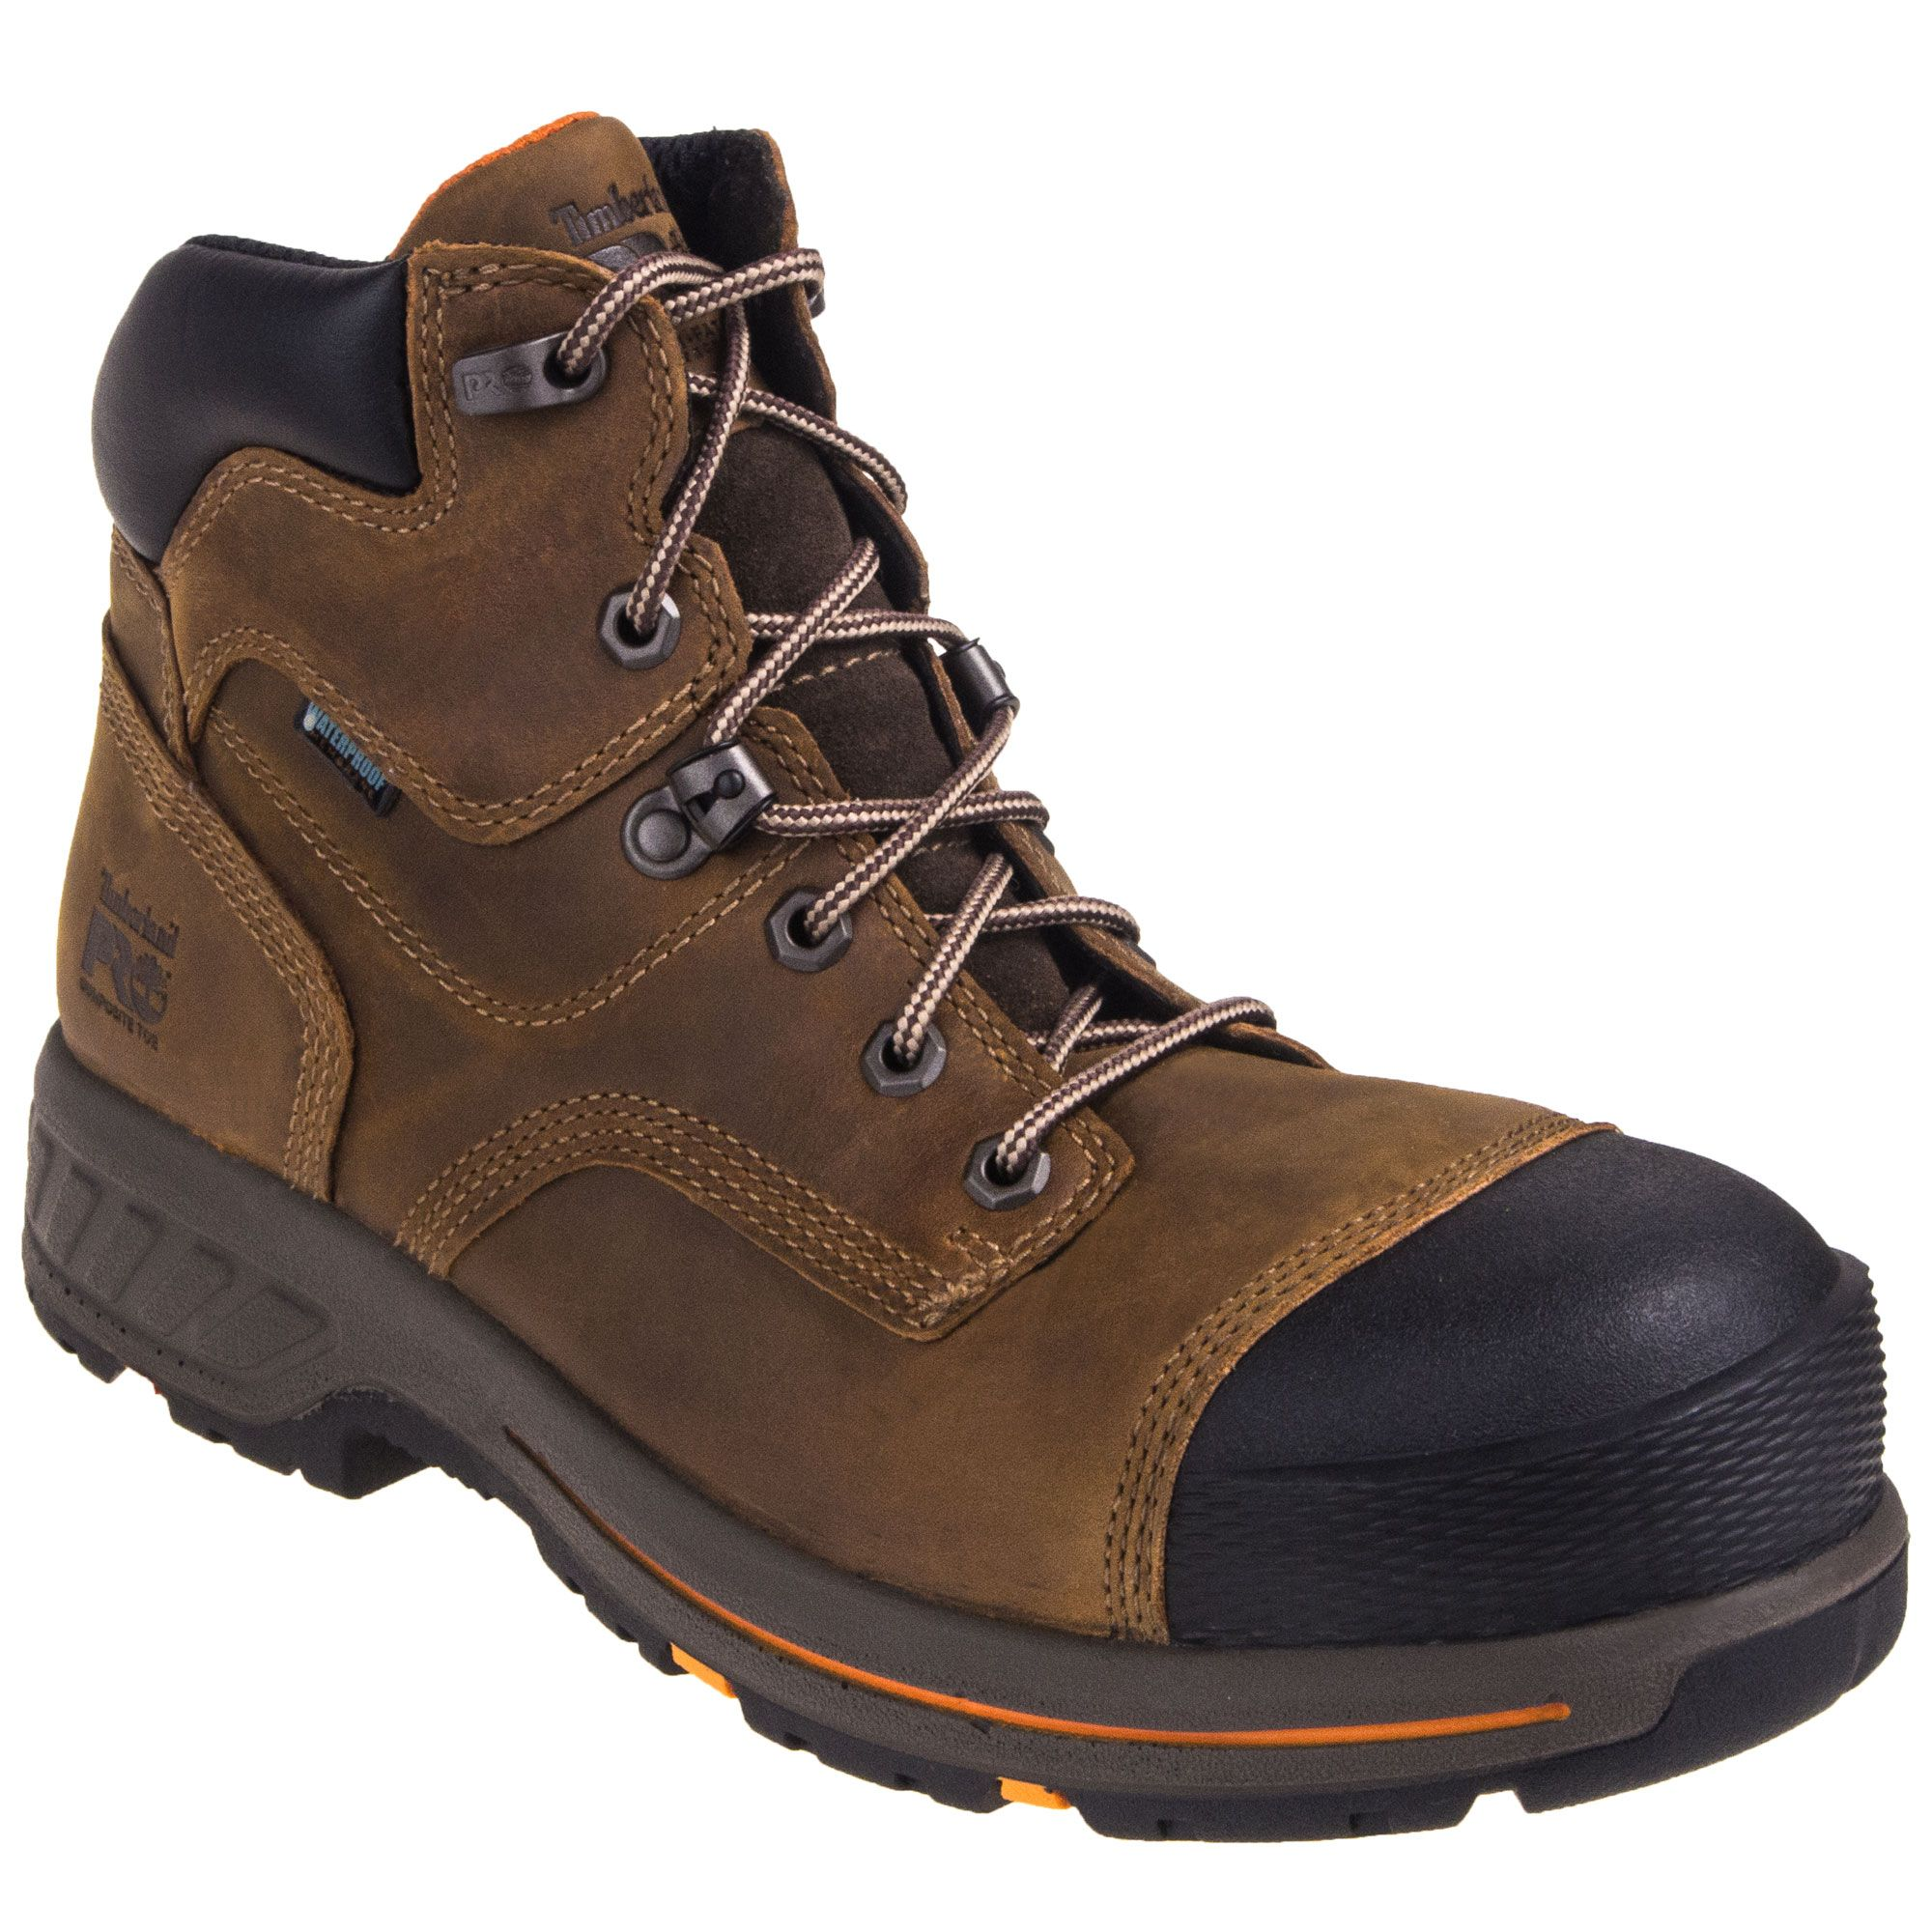 Timberland Pro Boots Men's Helix HD 6-Inch TB0A1HQL 214 Brown Composite Toe  EH Work